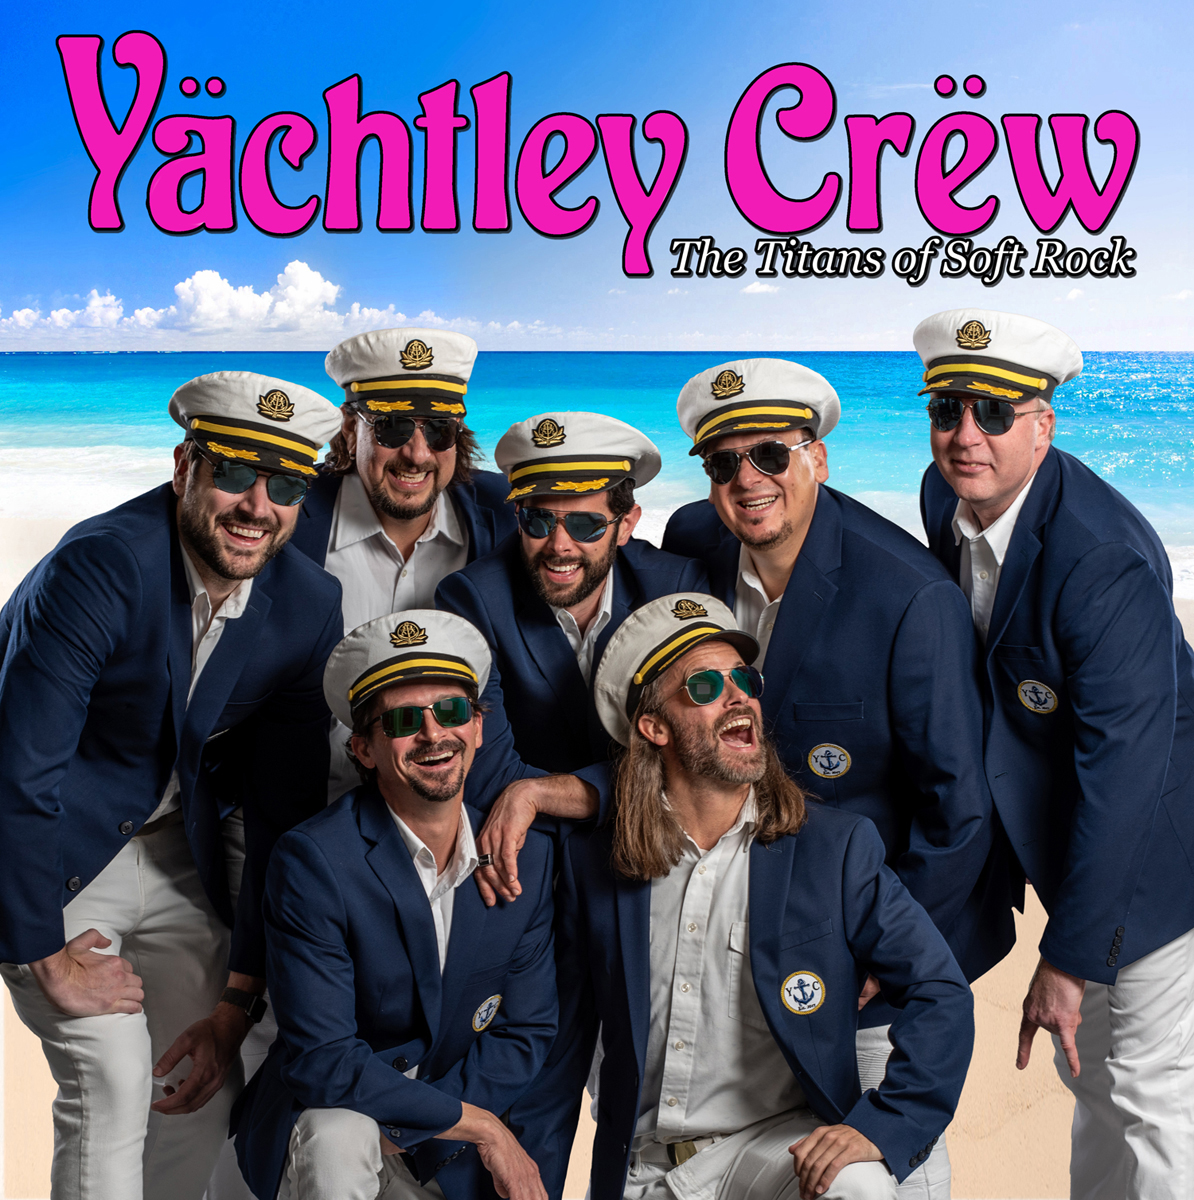 Yachtley Crew photo